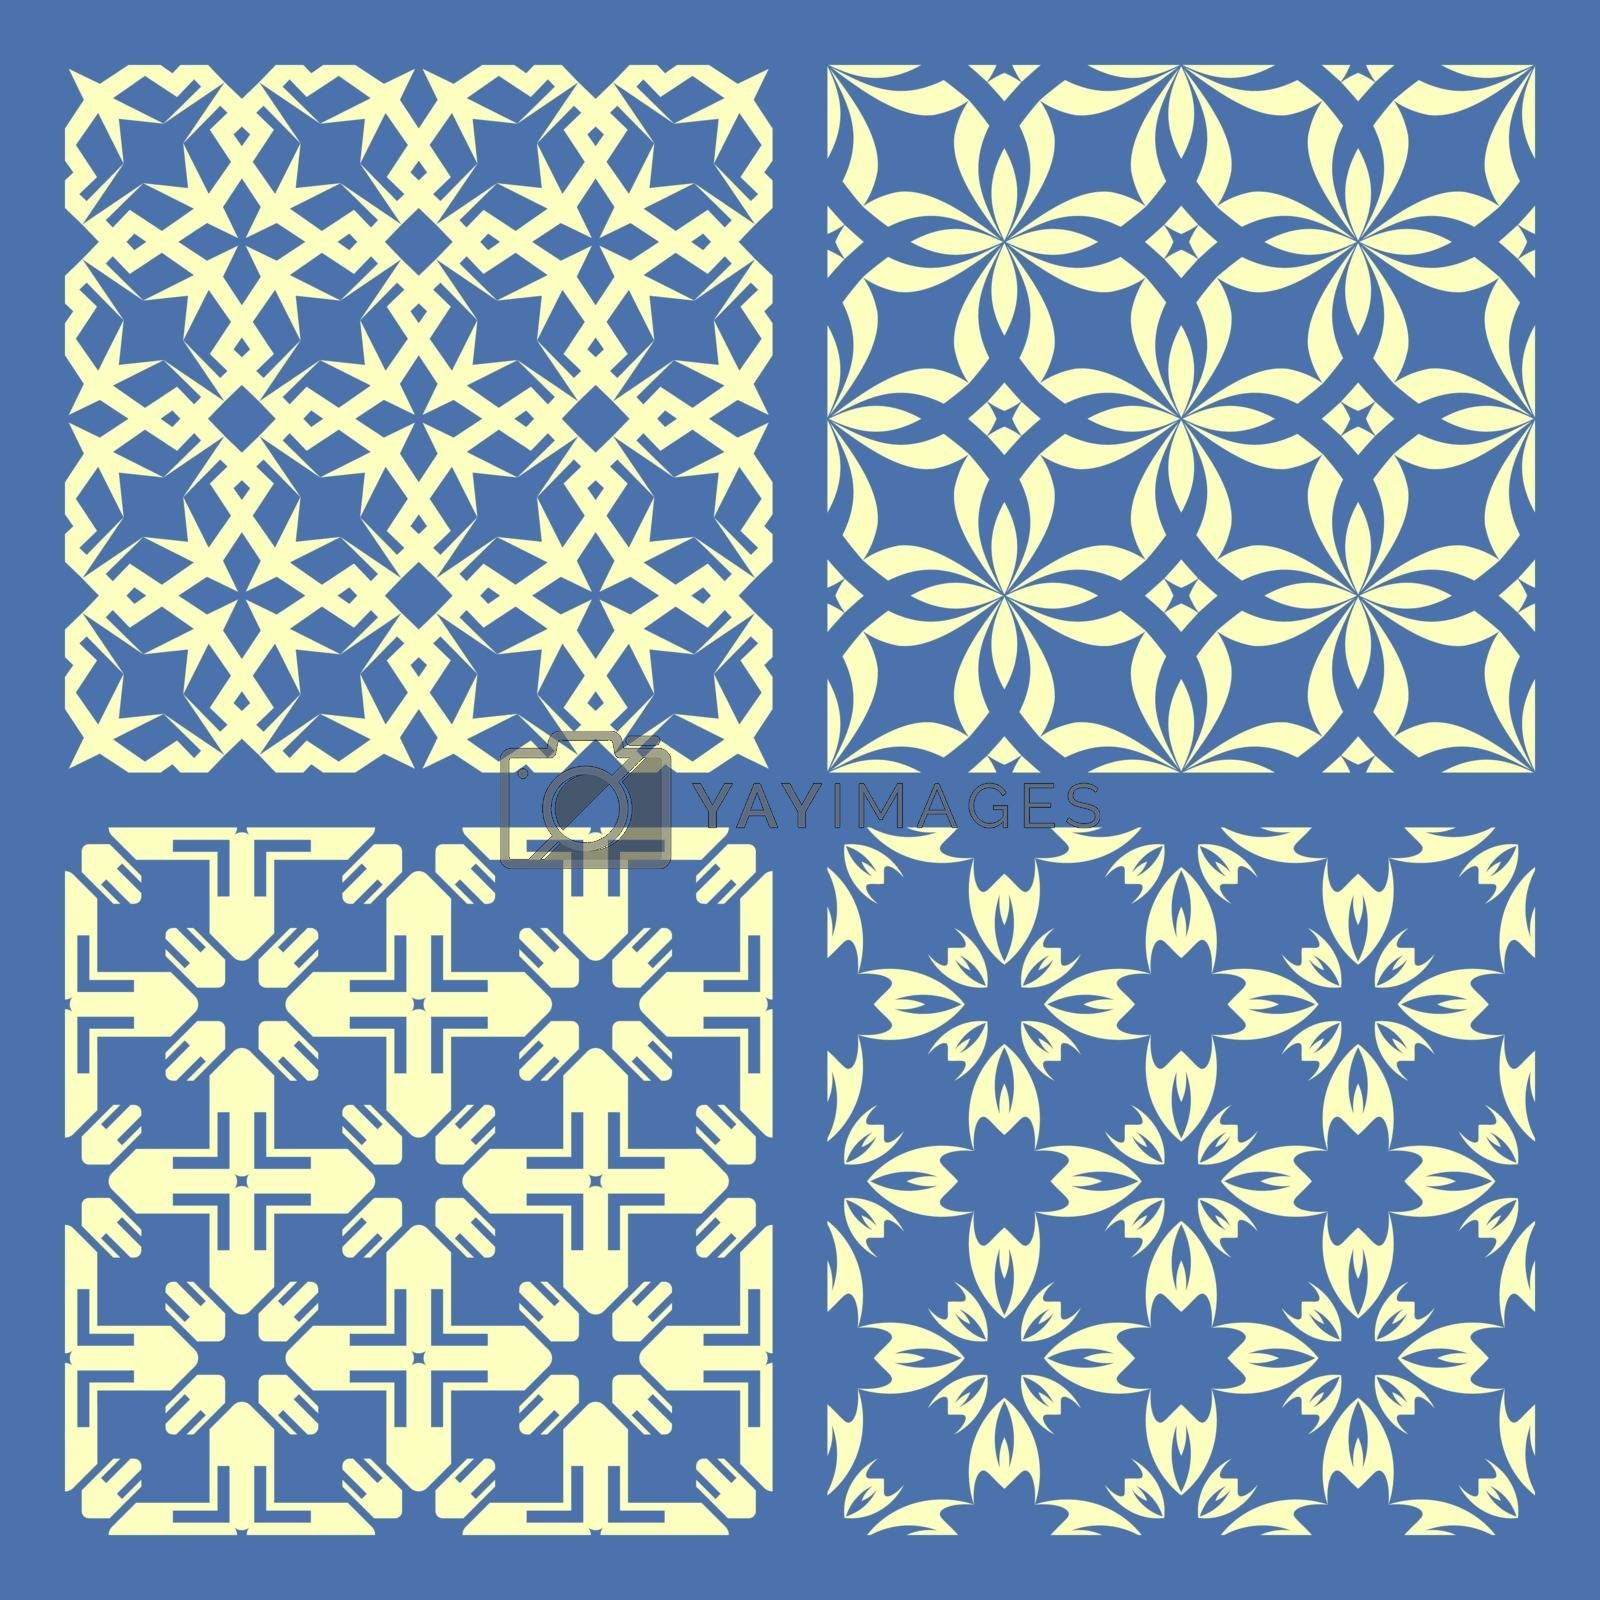 Seamless geometric pattern. Abstract illustration.